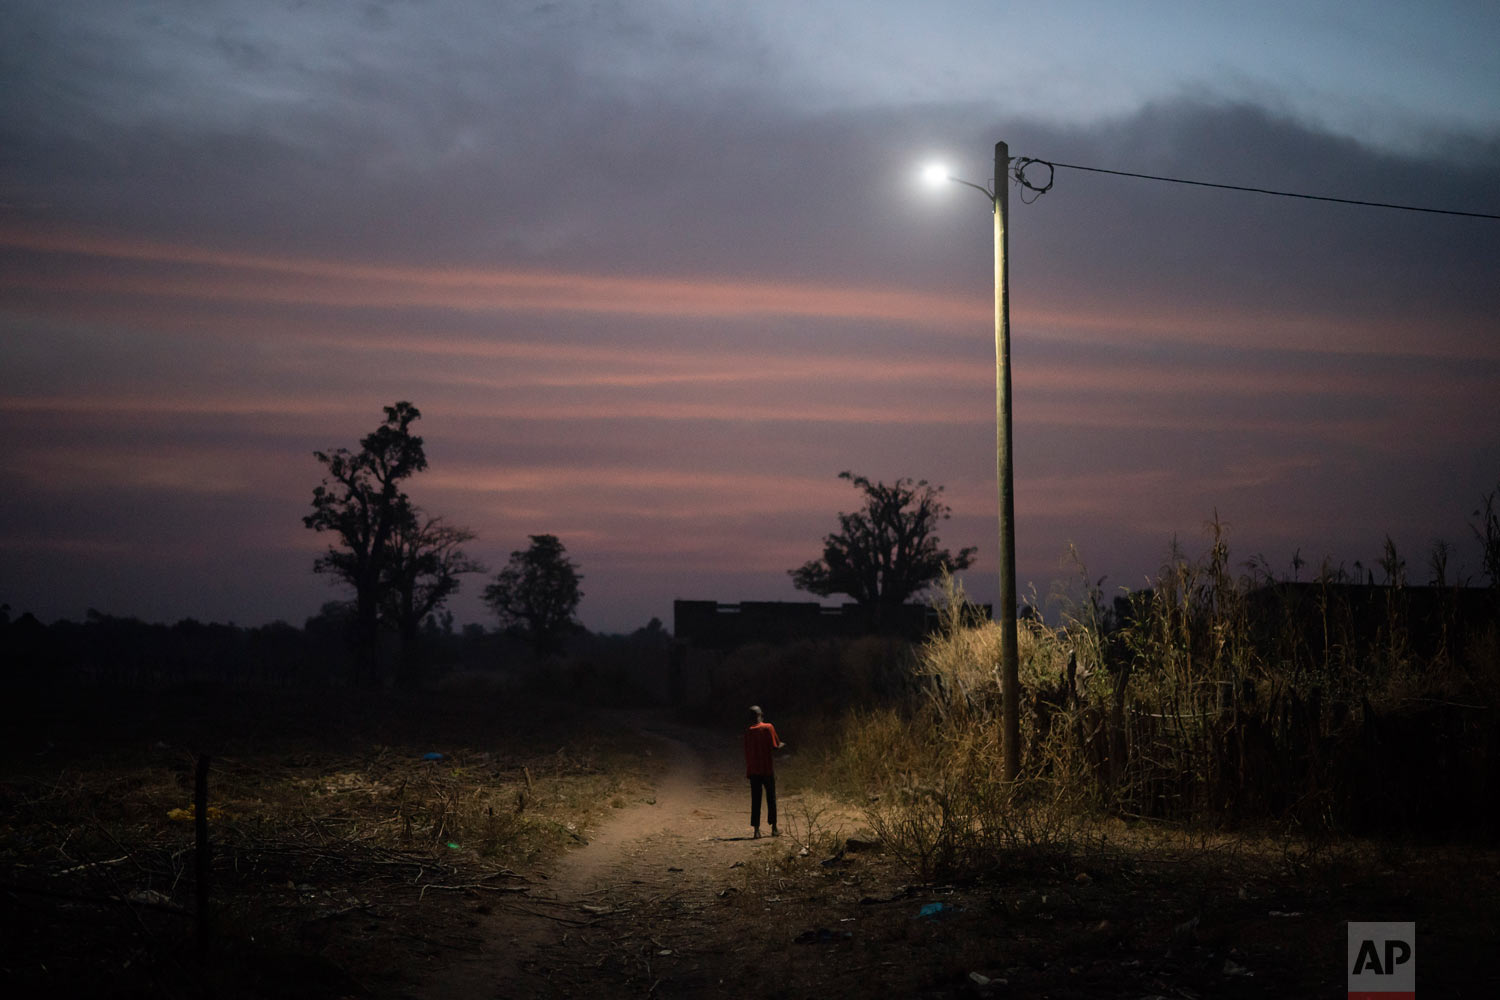 A boy stand under a street lamp at dusk on Nov. 26, 2018, in a village near Goudiry, Senegal. (AP Photo/Felipe Dana)